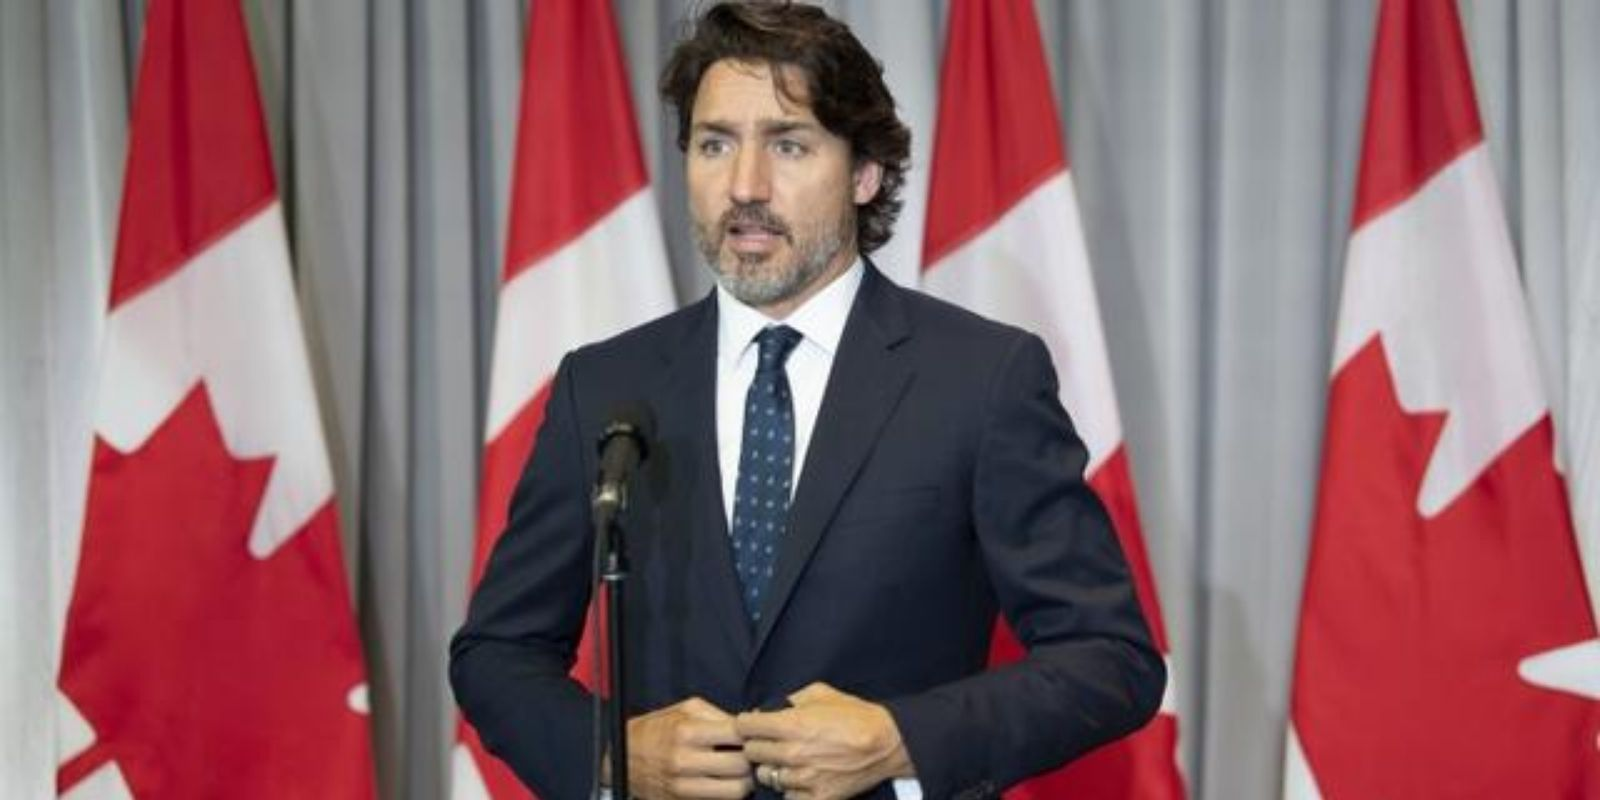 Trudeau must be transparent about plans to end COVID lockdowns